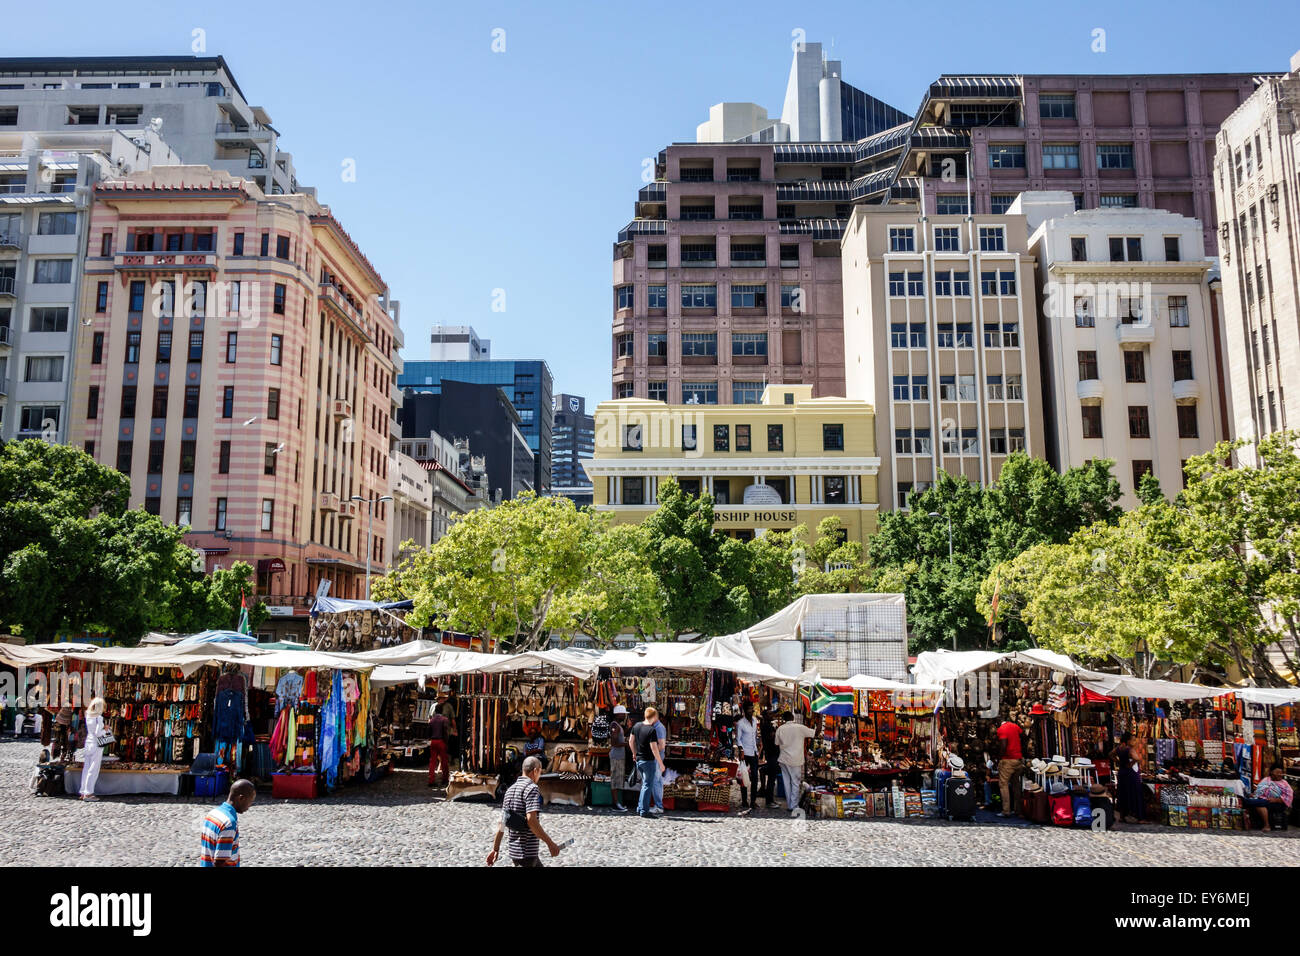 Cape Town South Africa African City Centre center Green Market Square historic vendors stalls sale crafts souvenirs Stock Photo